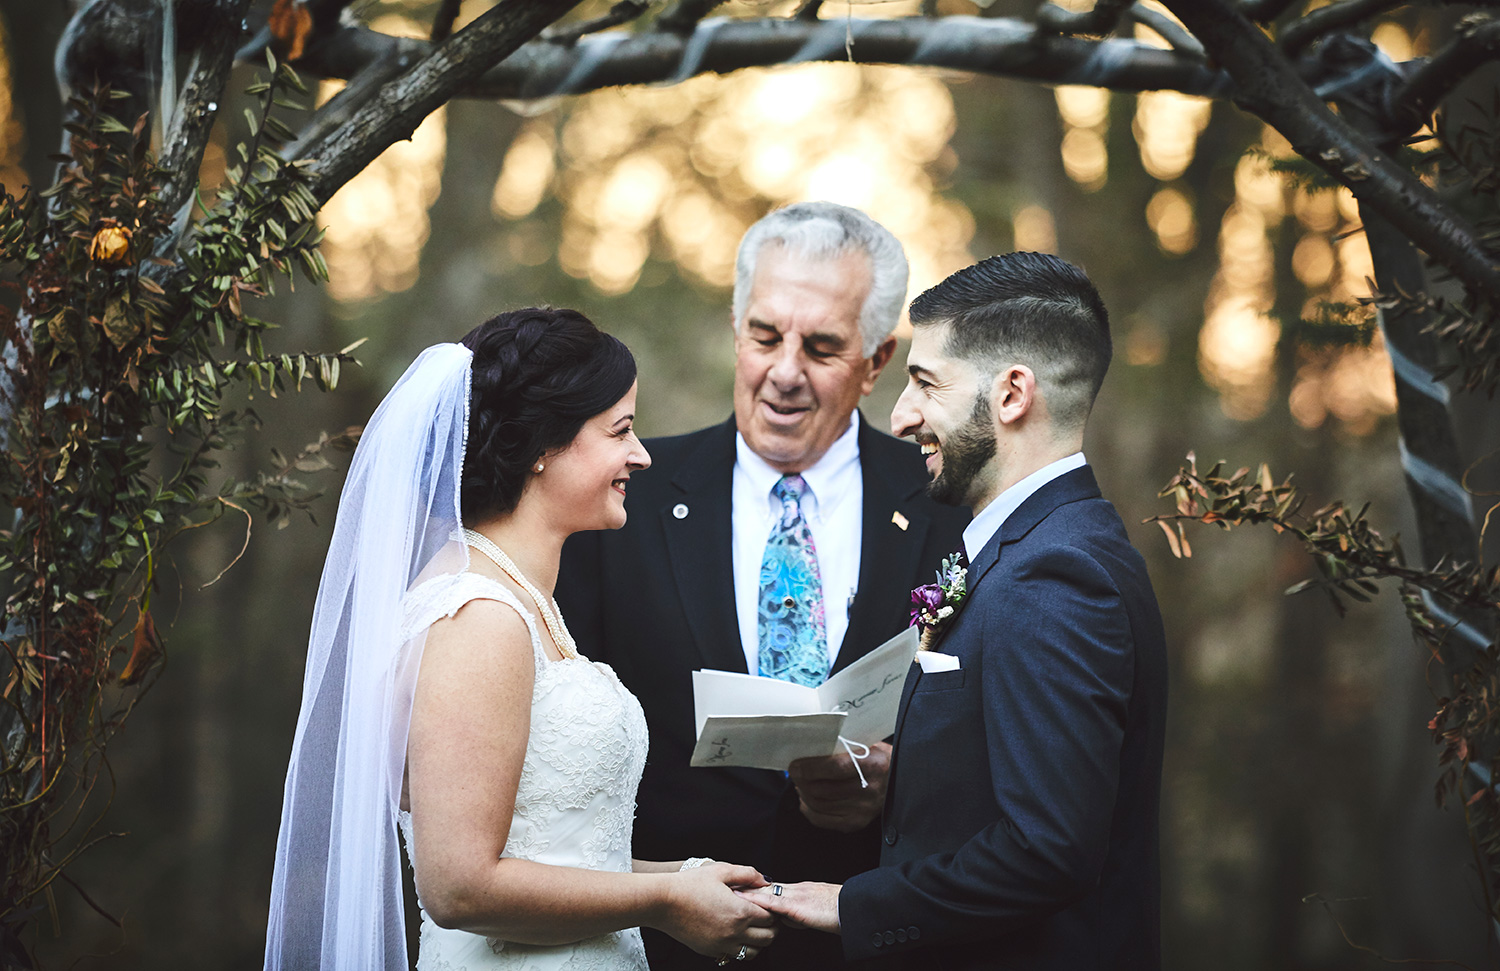 161119_ArrowParkLake&LodgeWedding_By_BriJohnsonWeddings_0113.jpg